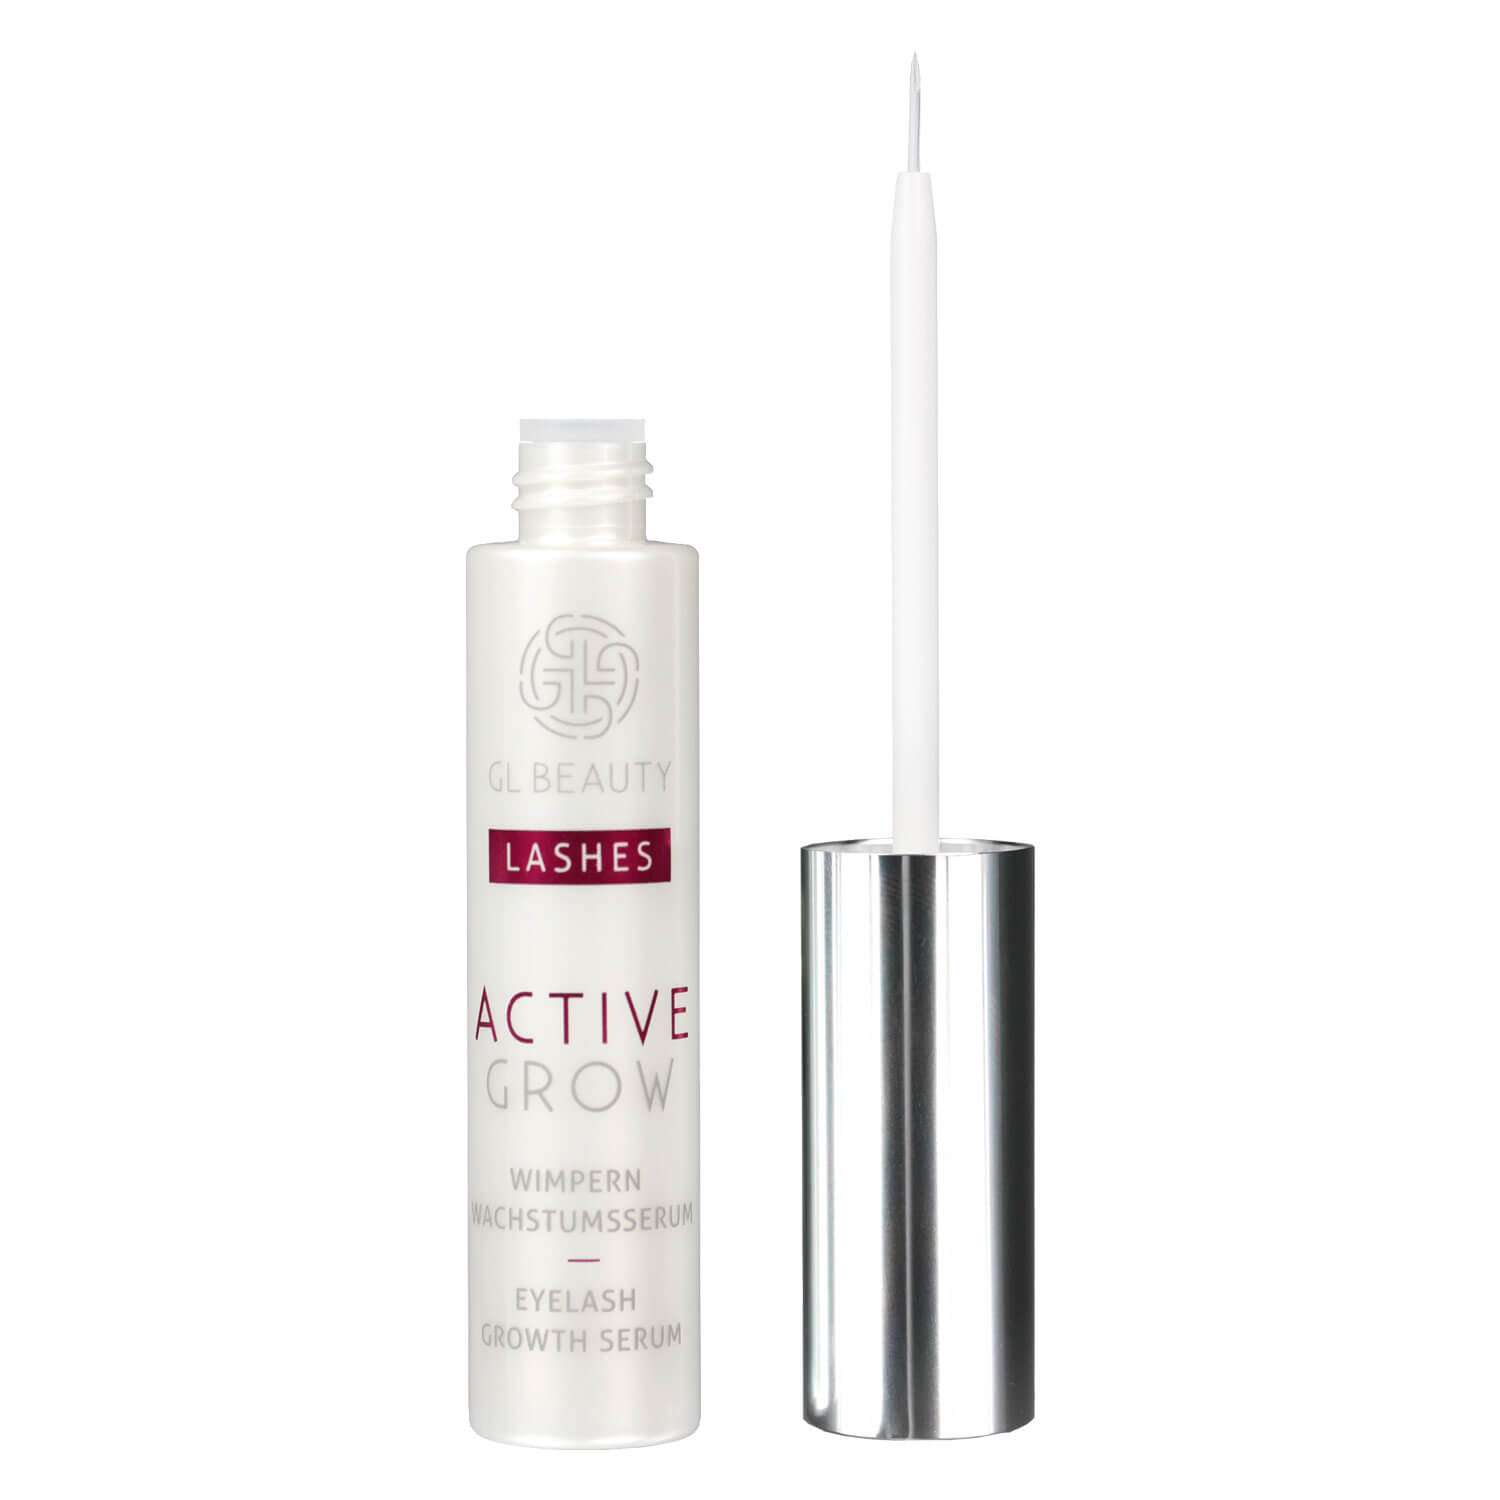 GL Beautycompany - Active Grow - 3ml